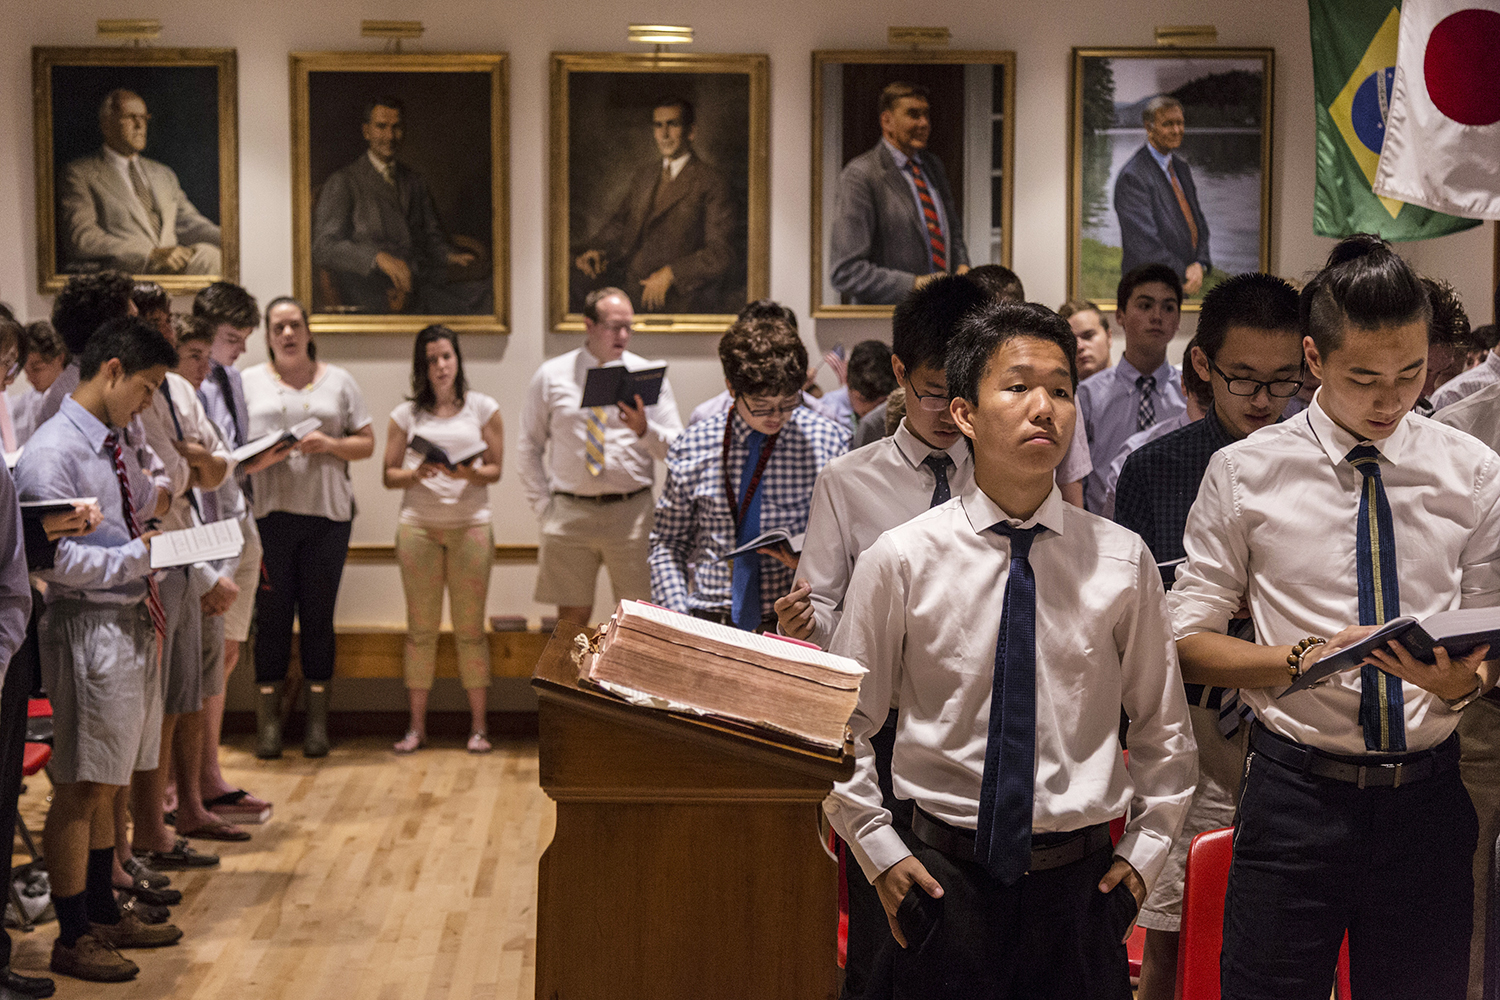 October 10, 15-year-old Ryan does not participate during chapel at South Kent School, in Connecticut. He came to the U.S. from China this September to attend high school. An increasing number of Chinese families are sending their children to the U.S. for education. (Wu Jiaxiang/Tencent Guyu Project)